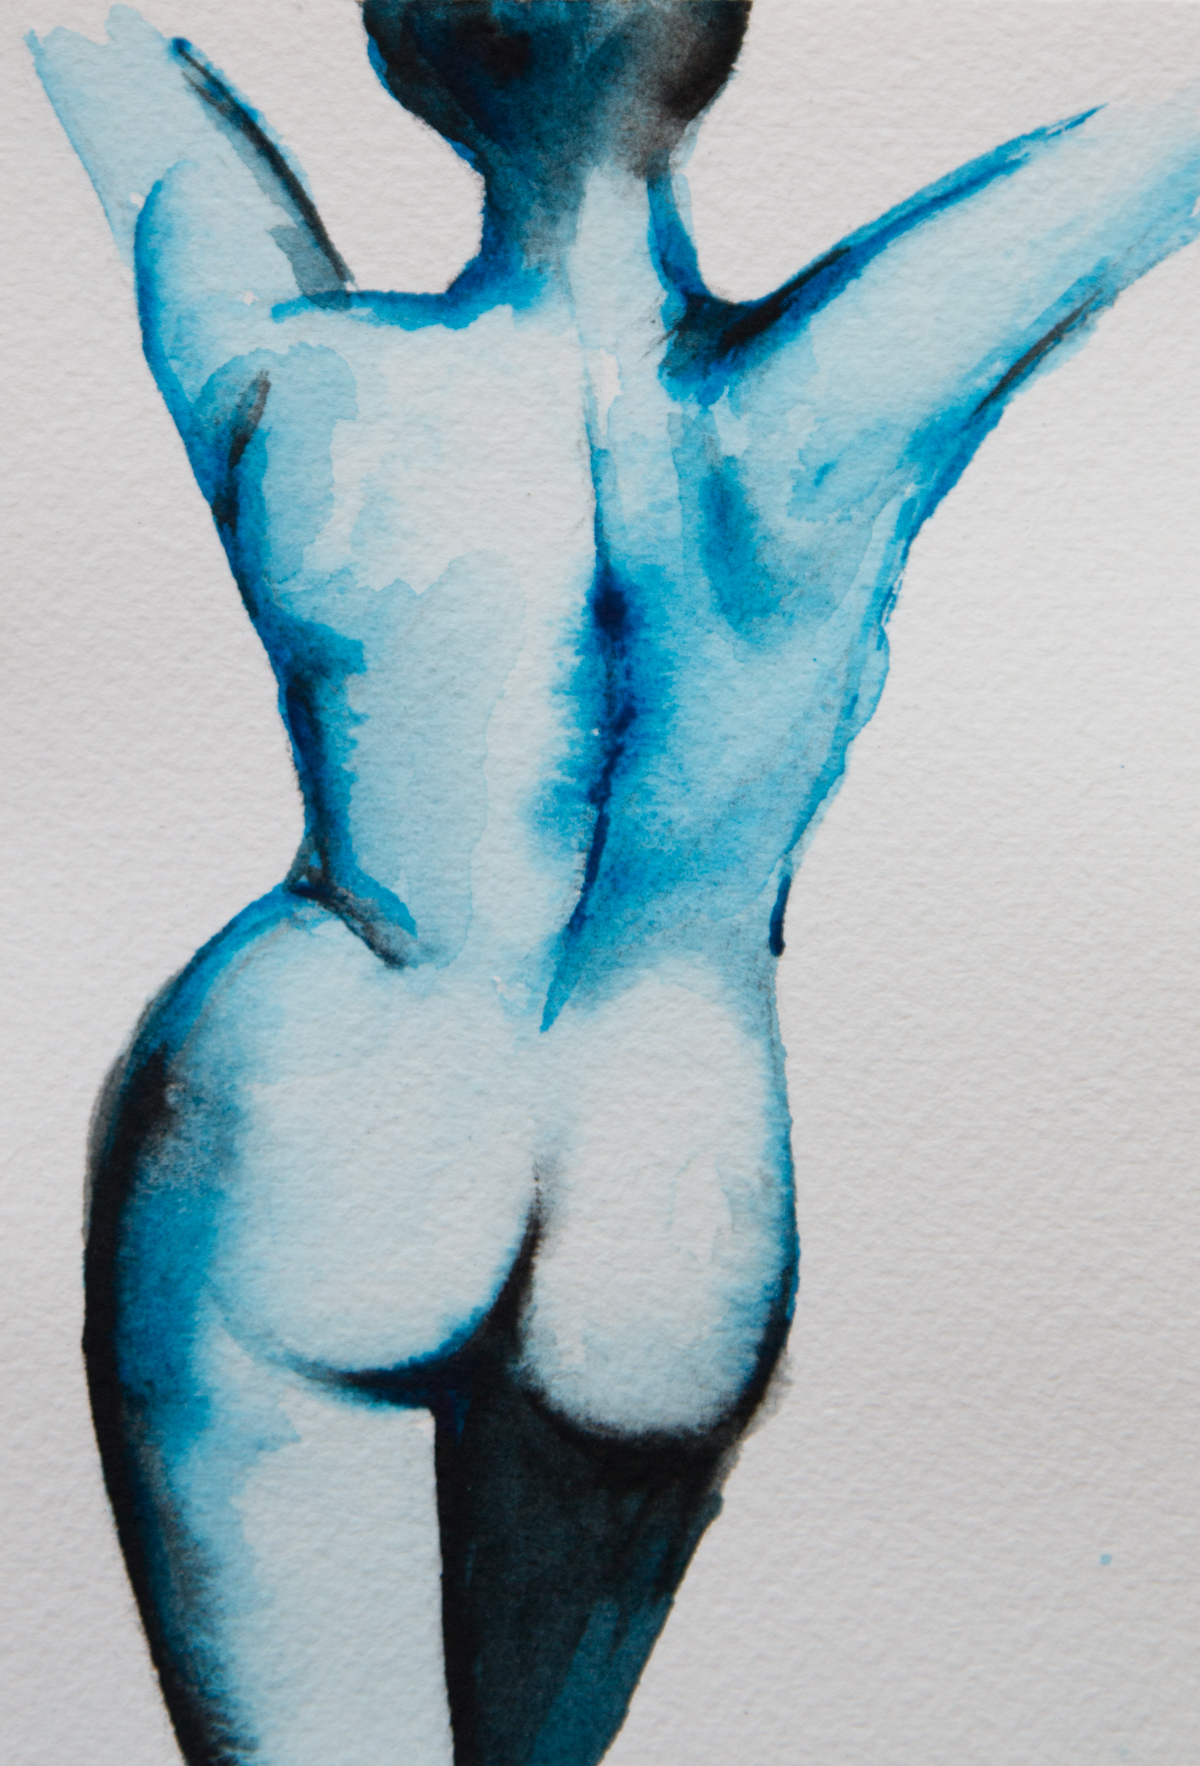 """The freedom of movement - A6 (4.1"""" x 5.8"""") Watercolour on Arches 300gsm paper."""